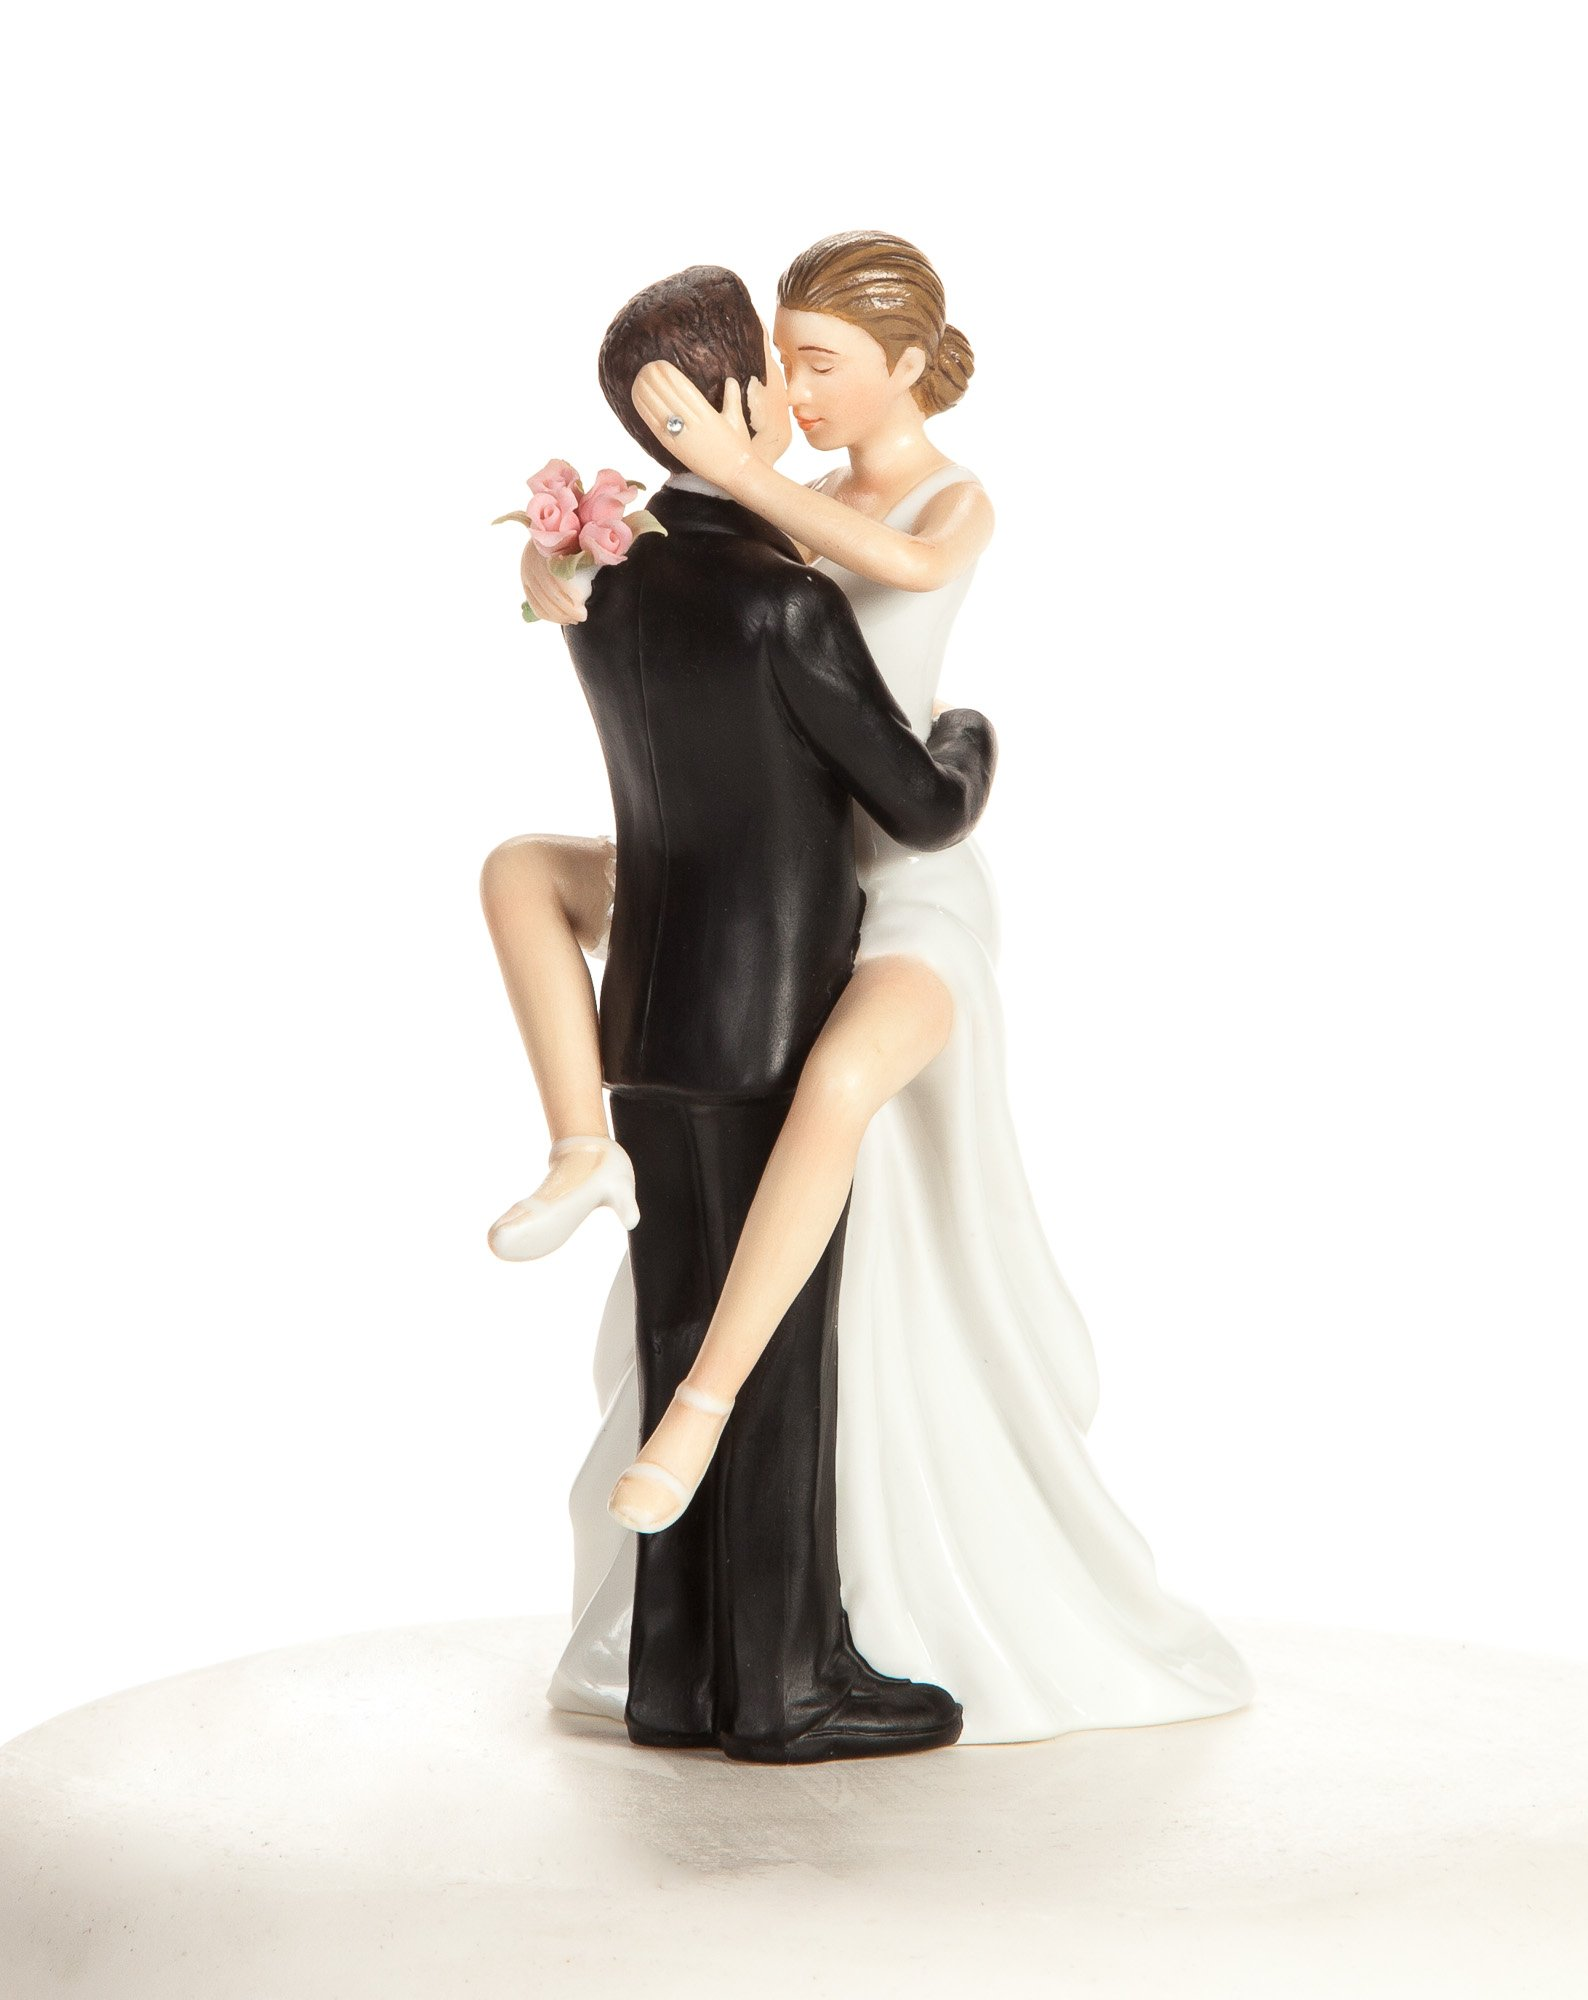 Wedding Collectibles Personalized Funny Sexy Wedding Bride and Groom Cake Topper Figurine: Bride Hair: BLACK - Groom Hair: BLACK